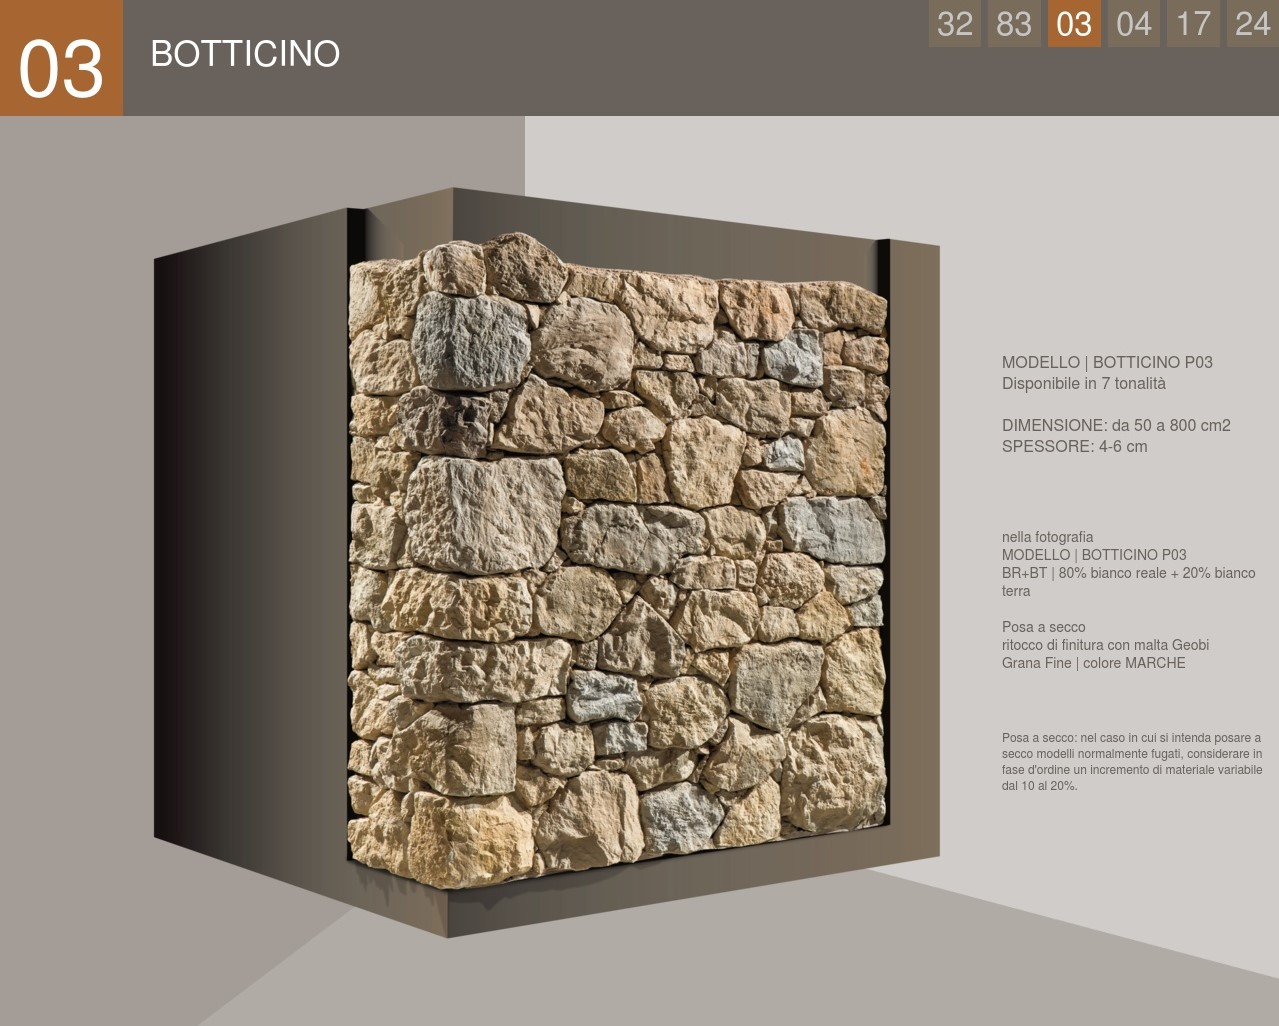 Stone cladding with an uncertain Opera Botticino model